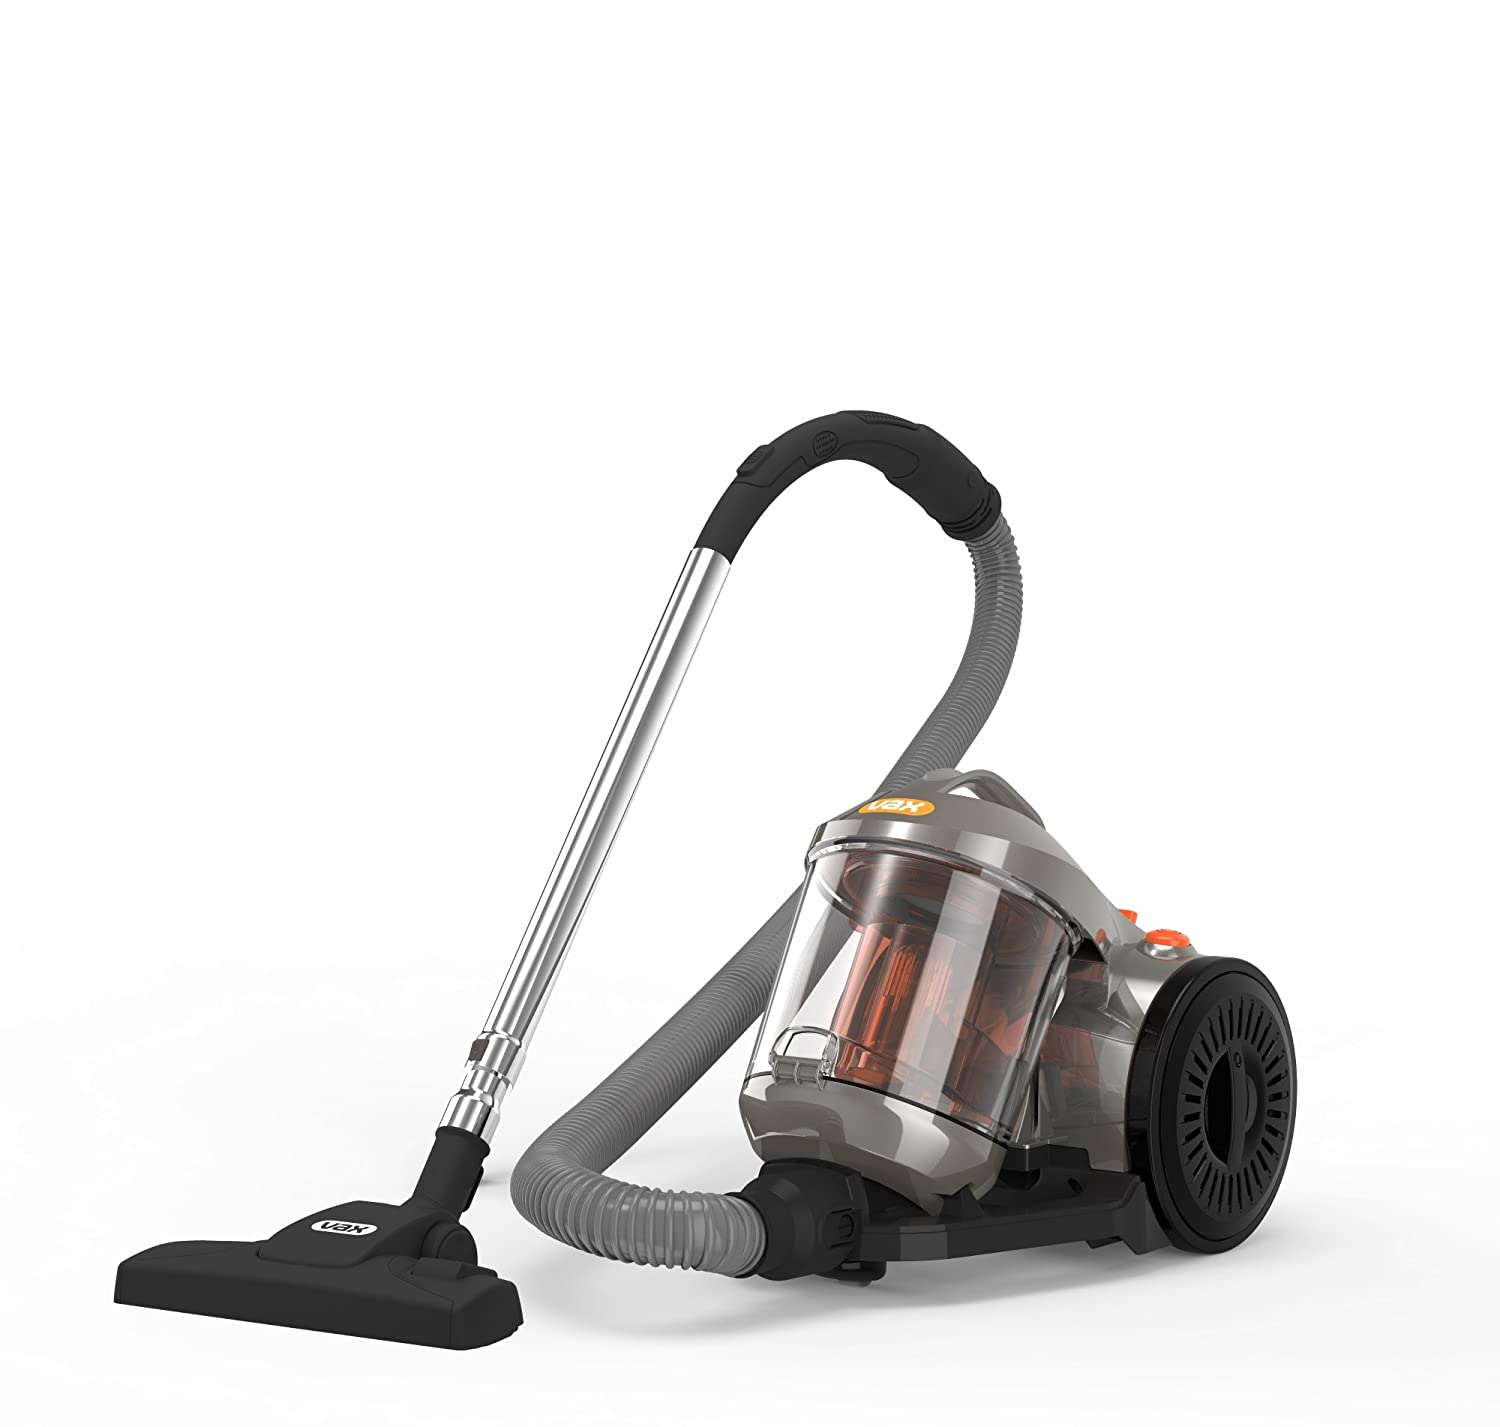 Vax C85 P4 Be Power 4 Cylinder Vacuum Cleaner 800 W Amazoncouk Kitchen Home